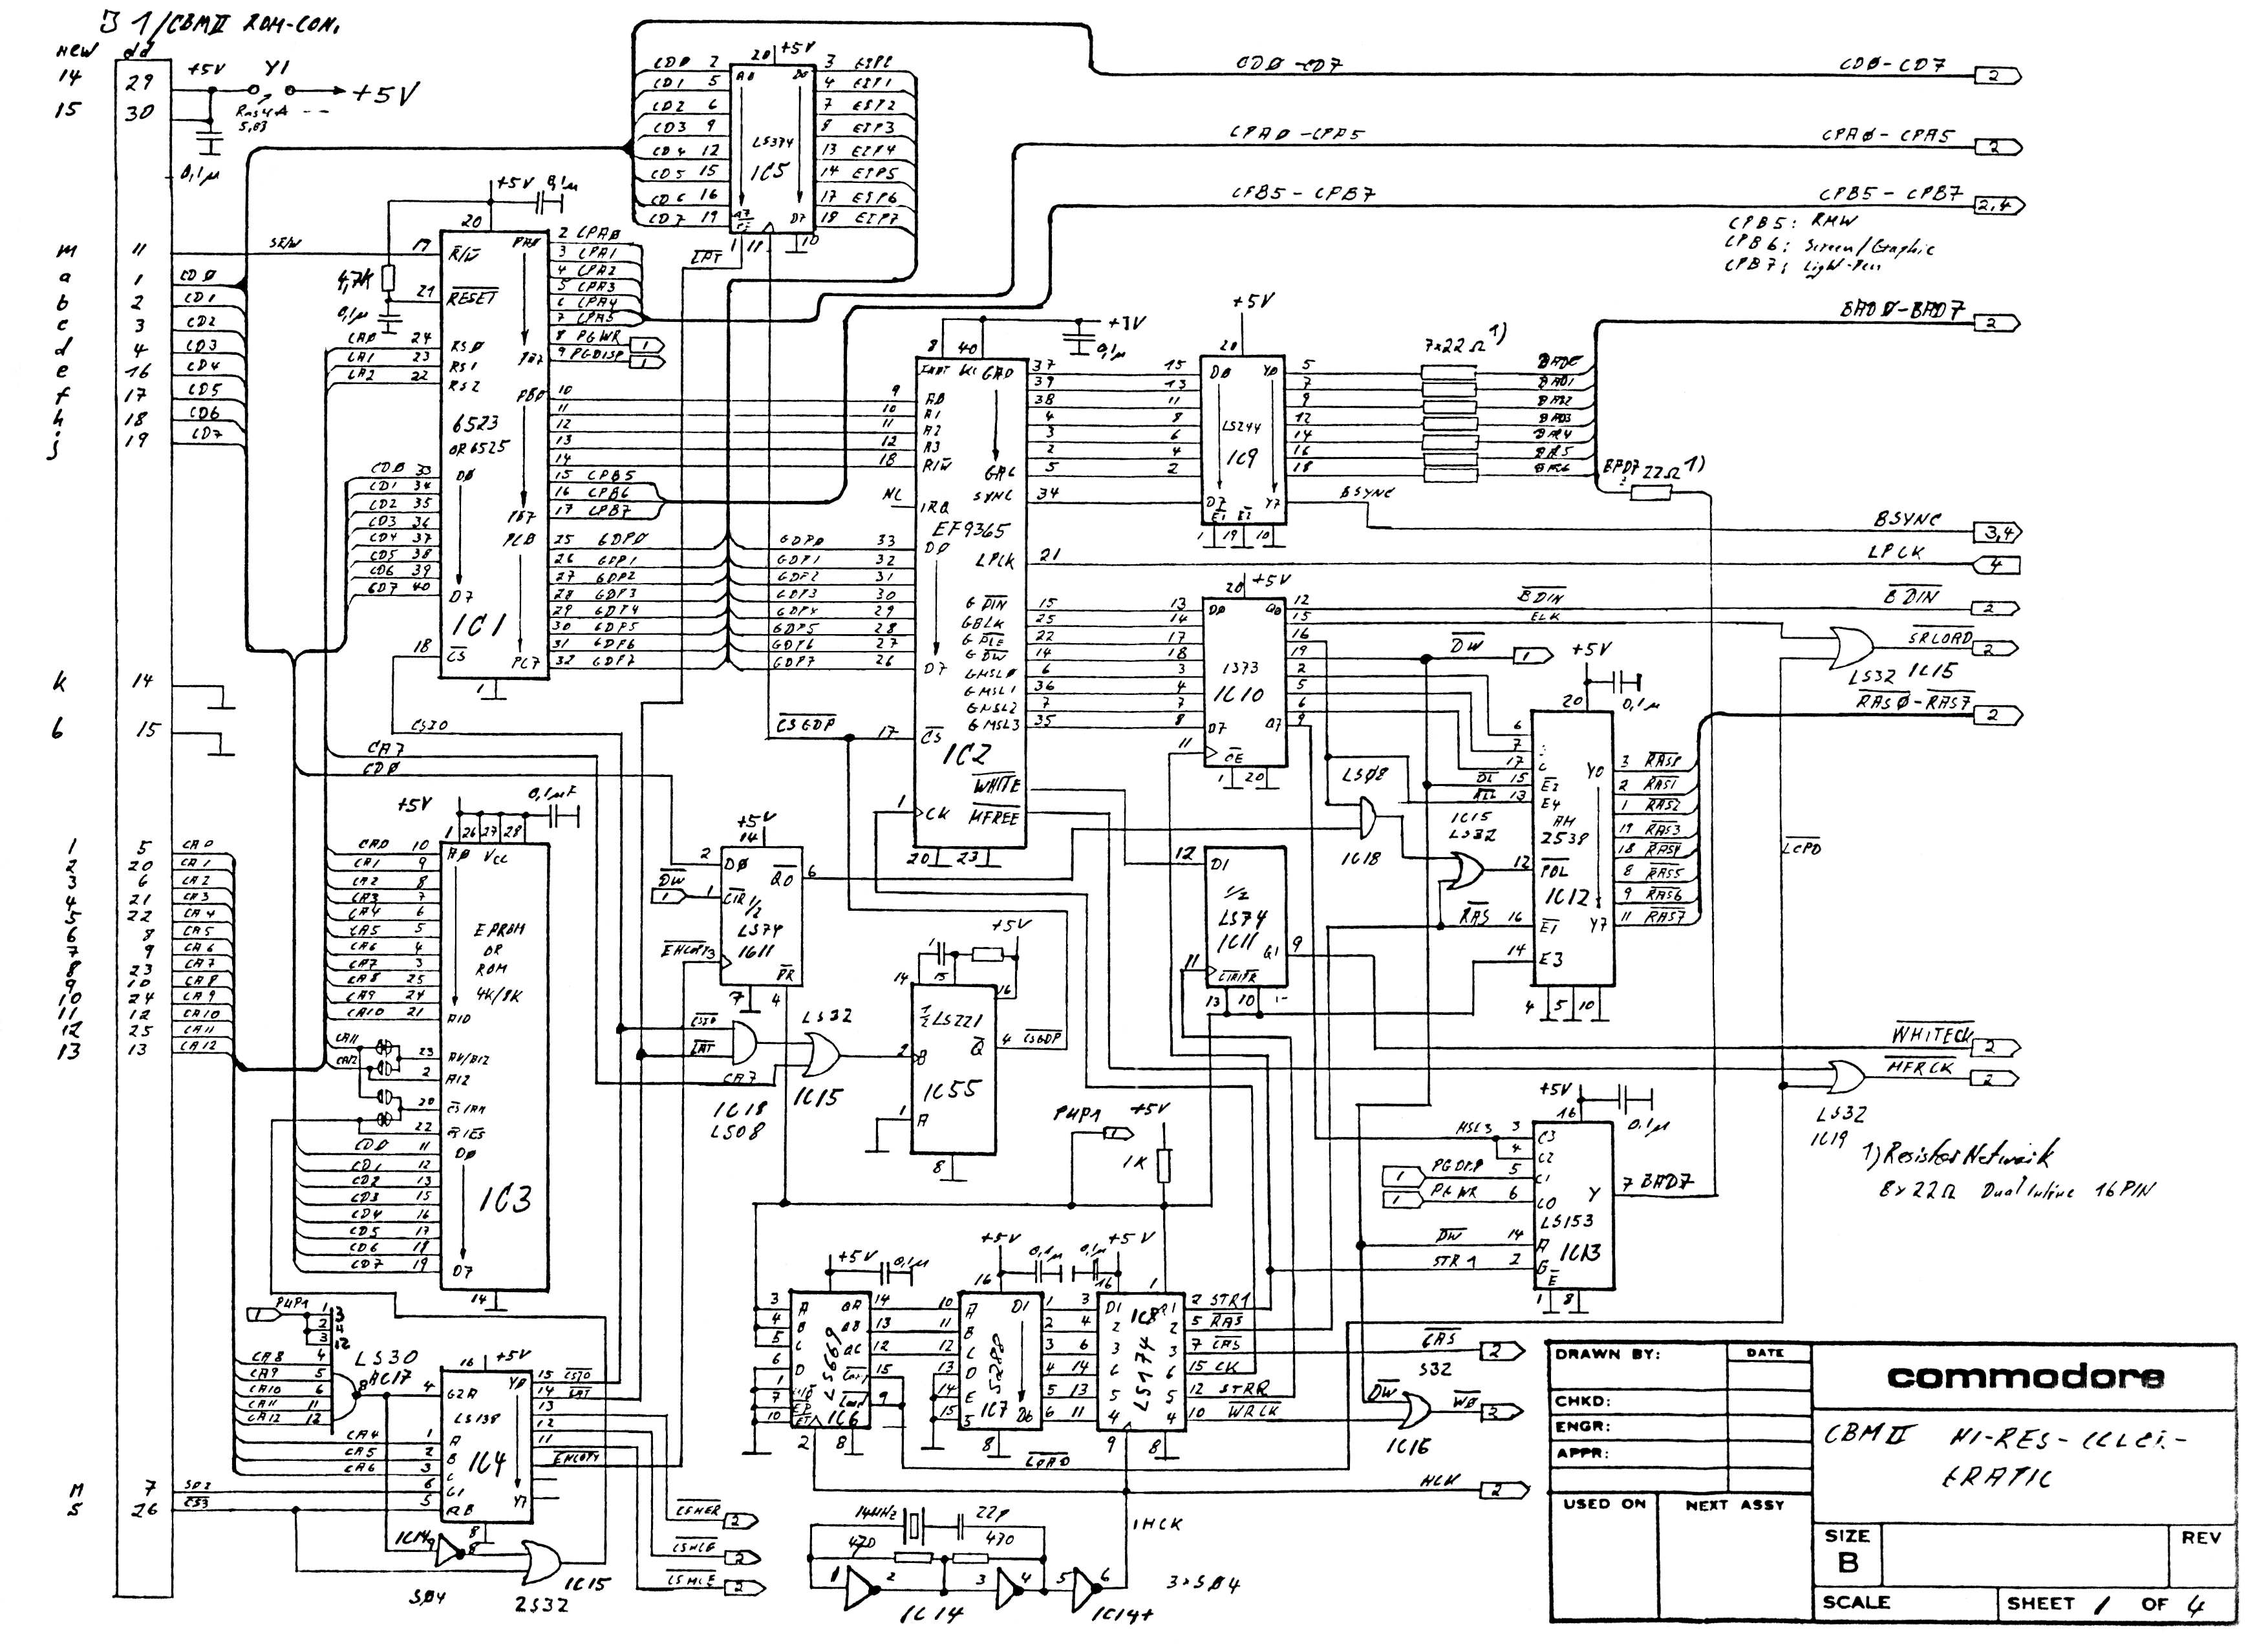 Pub Cbm Schematics Index Schematic Diagram Keyboard Of Unknown Ii Hi Res Graphic Something Cbm500 700keyboardadapter Pinout Useful To Adapting A B500 For The B700 Series